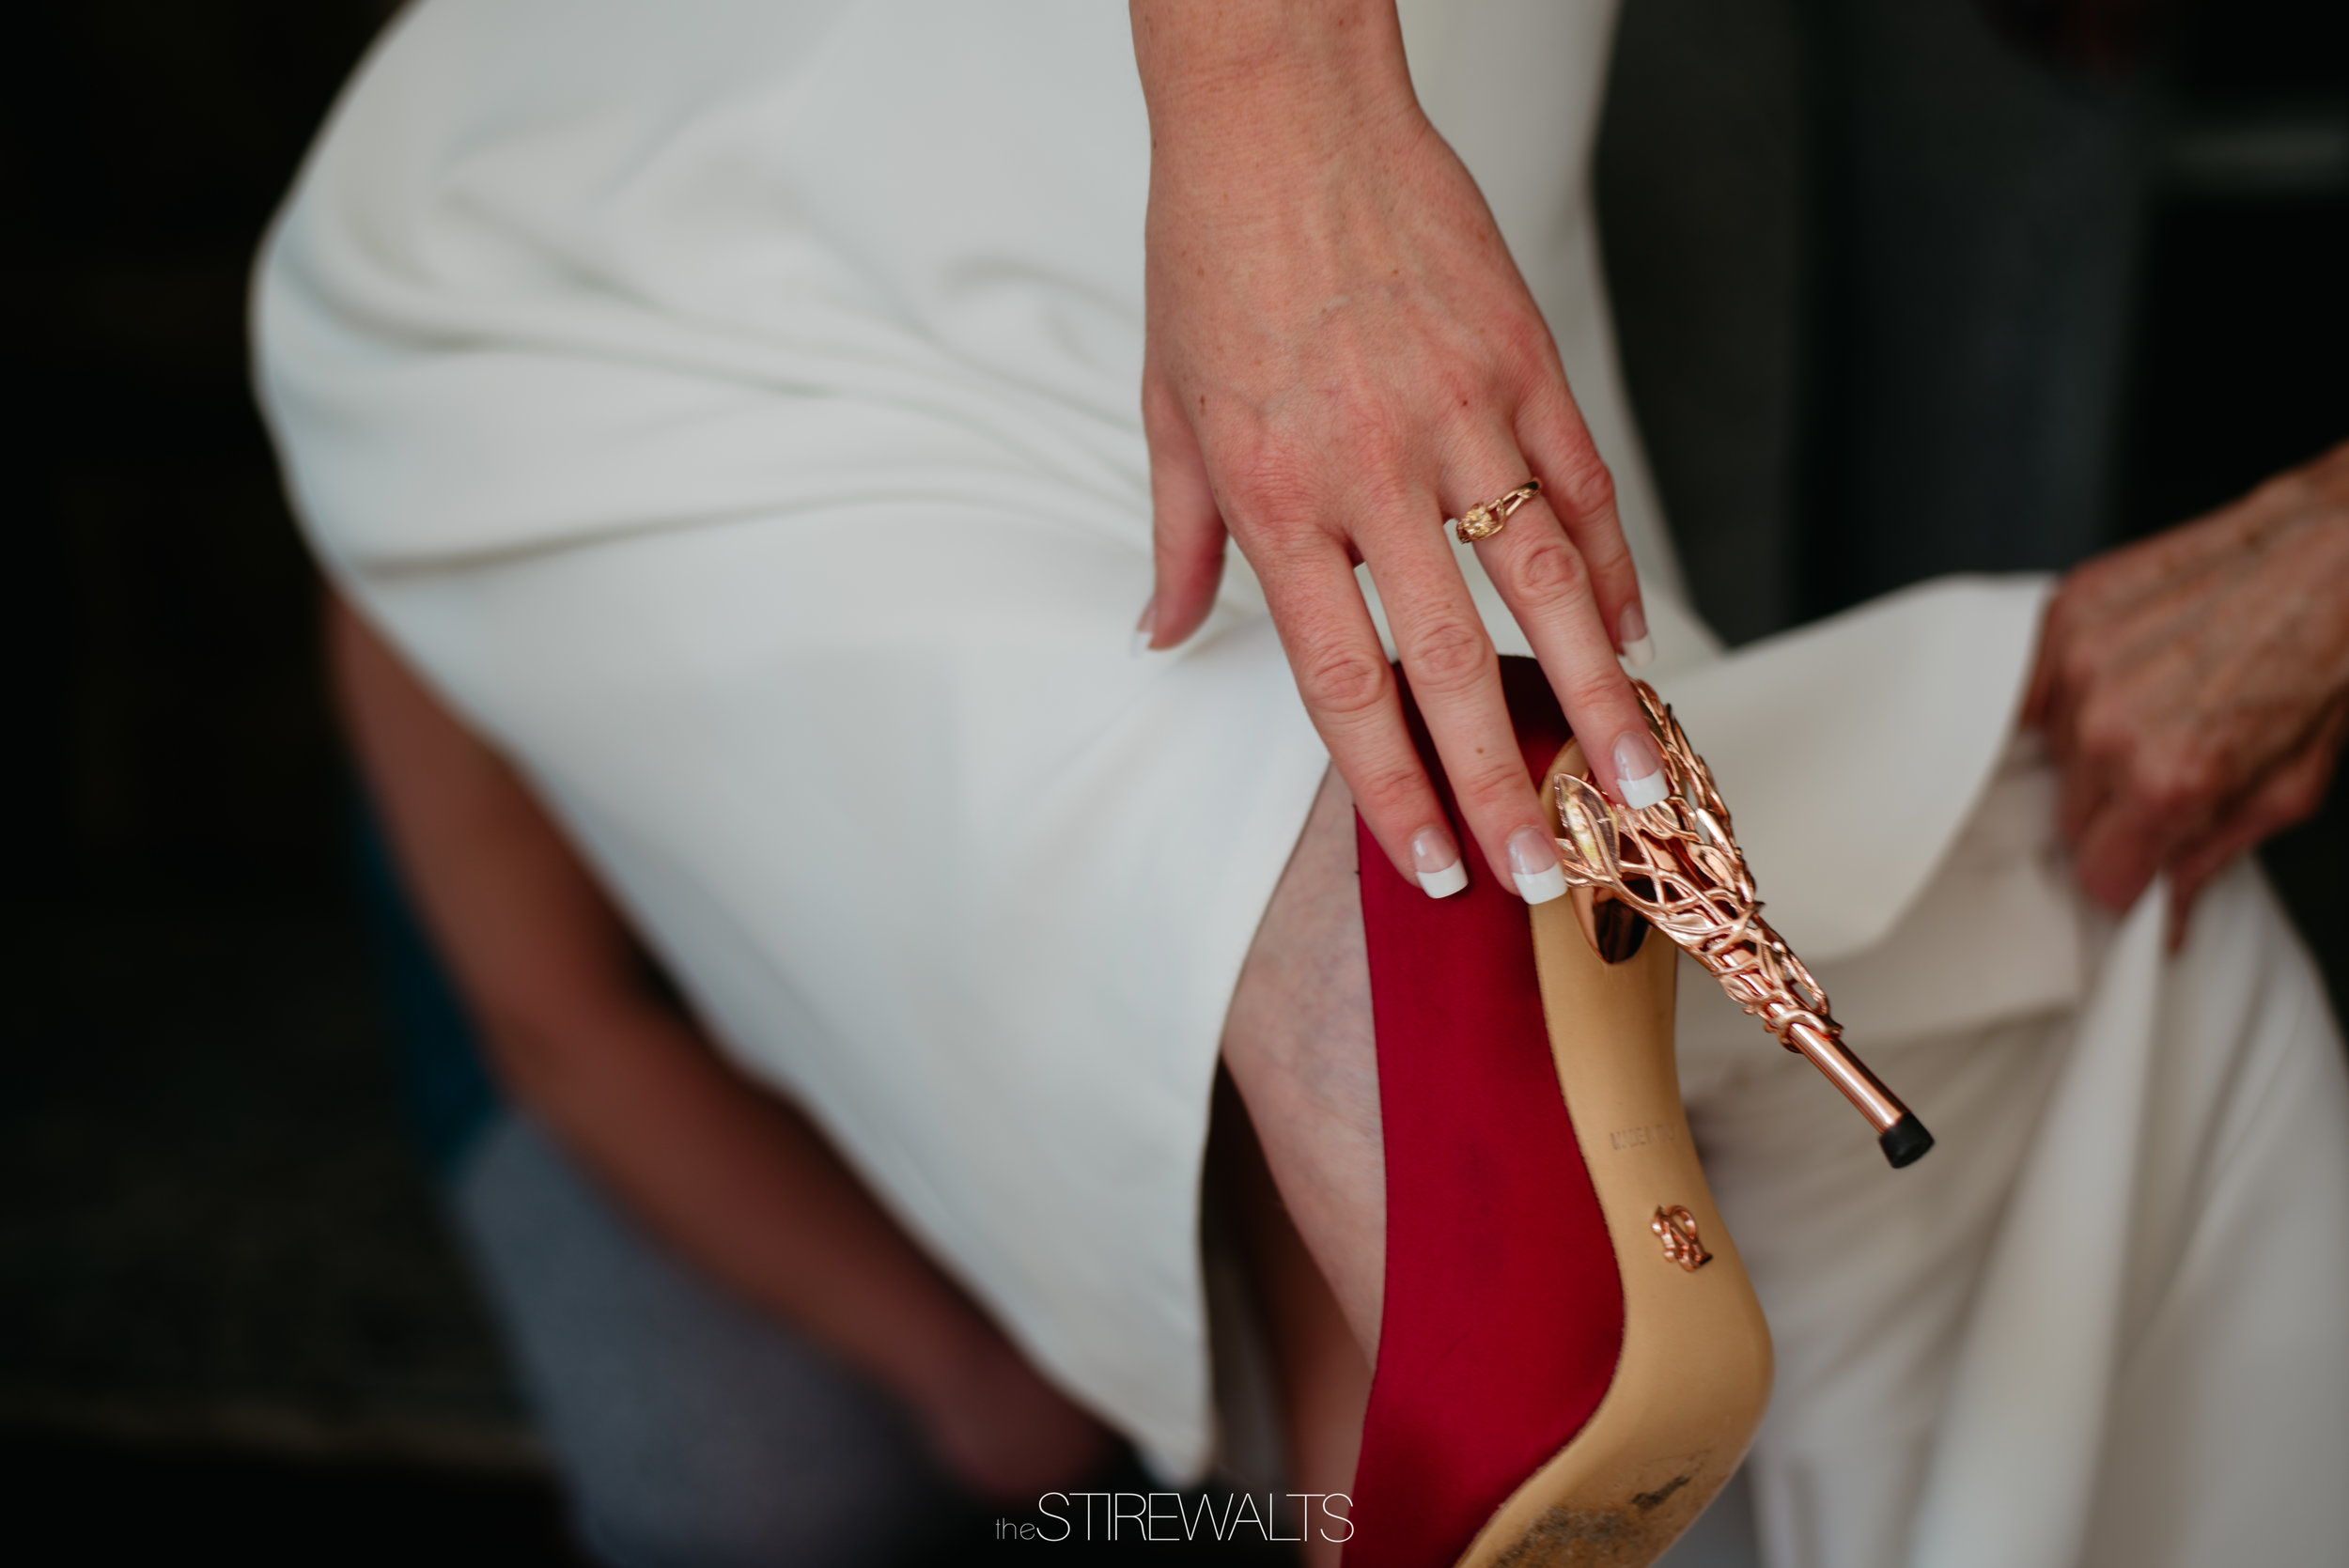 Kayla.Jay.Wedding.Blog.2018.©TheStirewalts-20.jpg